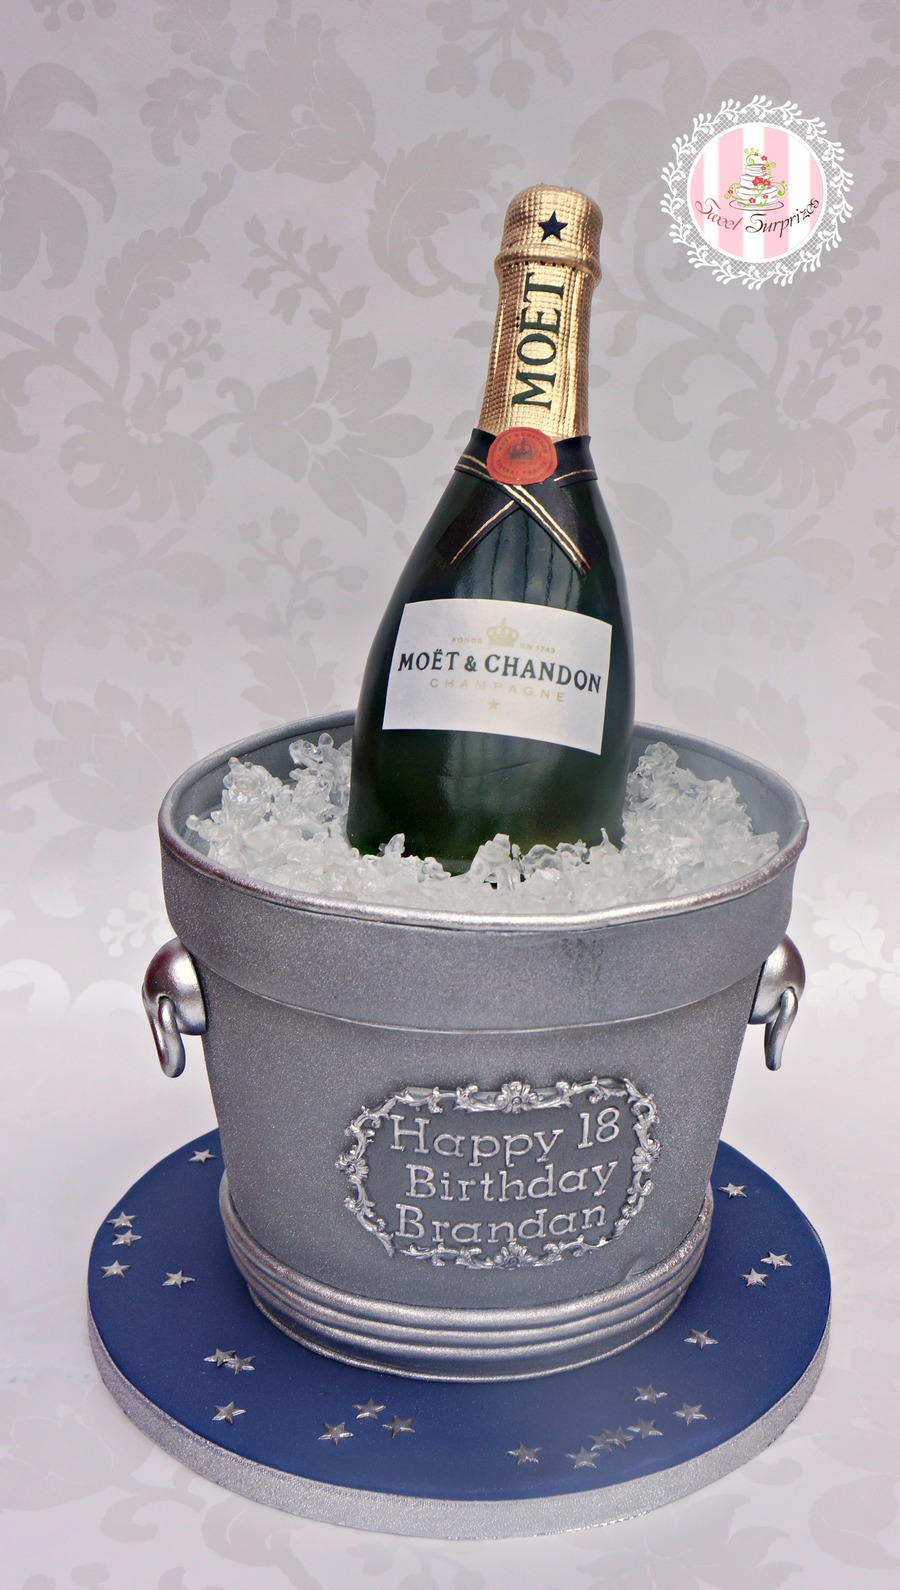 How To Make A Champagne Bottle Birthday Cake